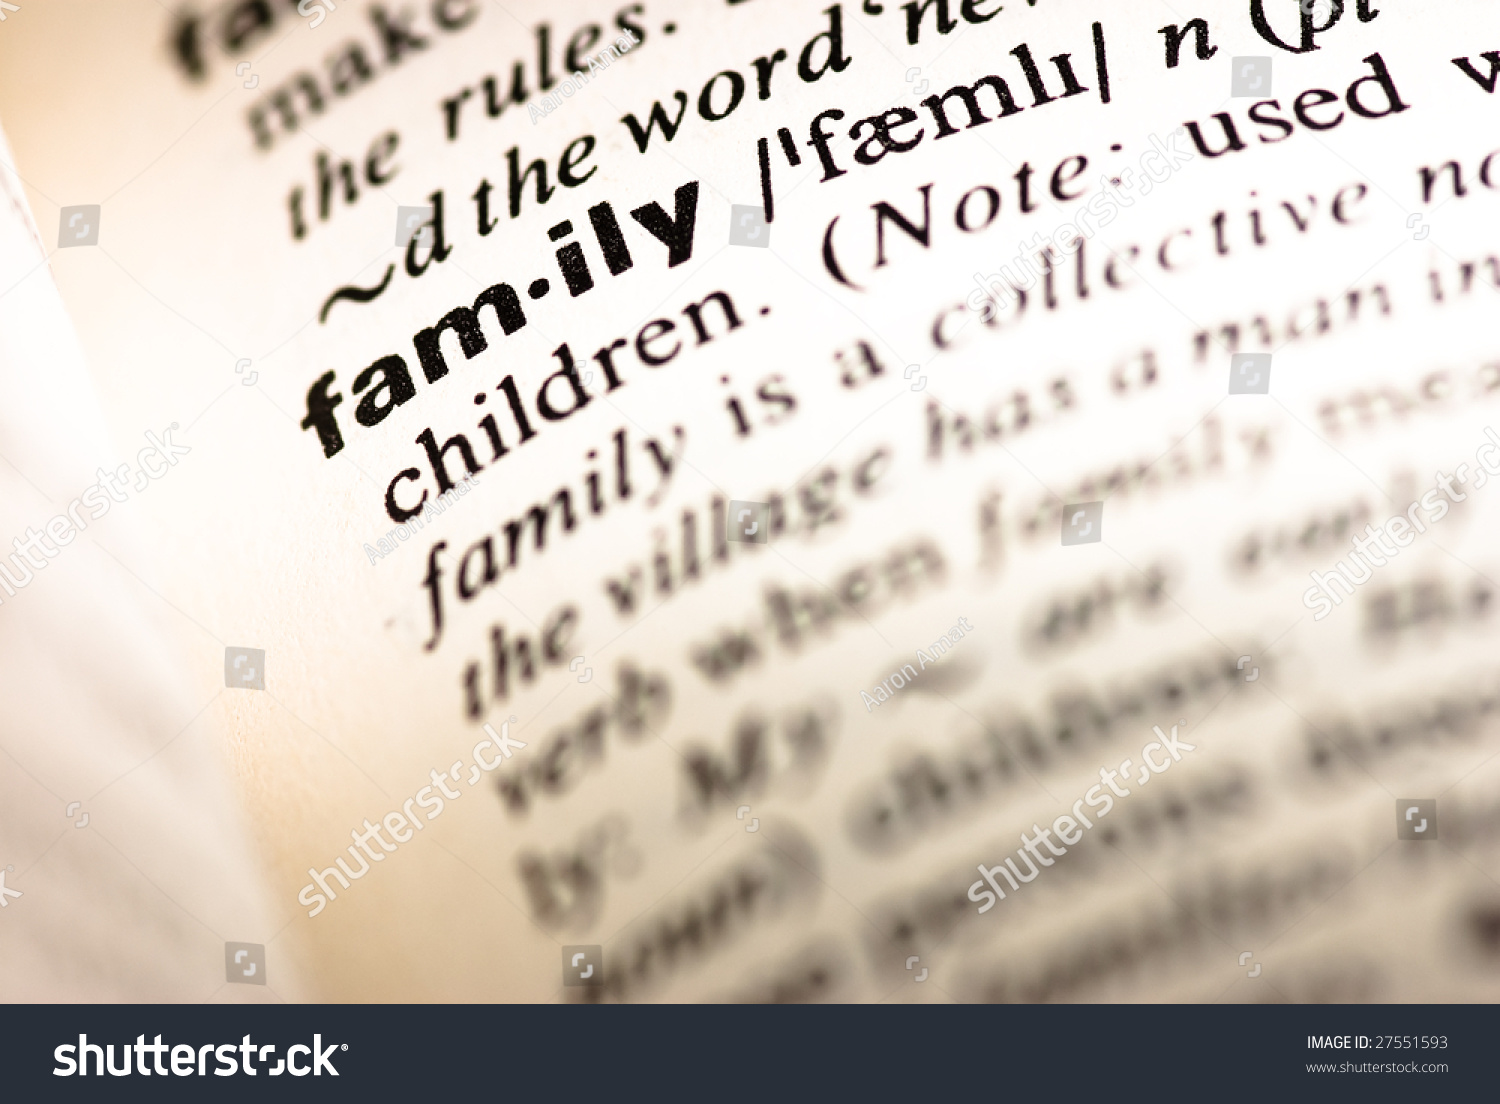 Dictionary Definition Family Stock Photo 27551593 - Shutterstock